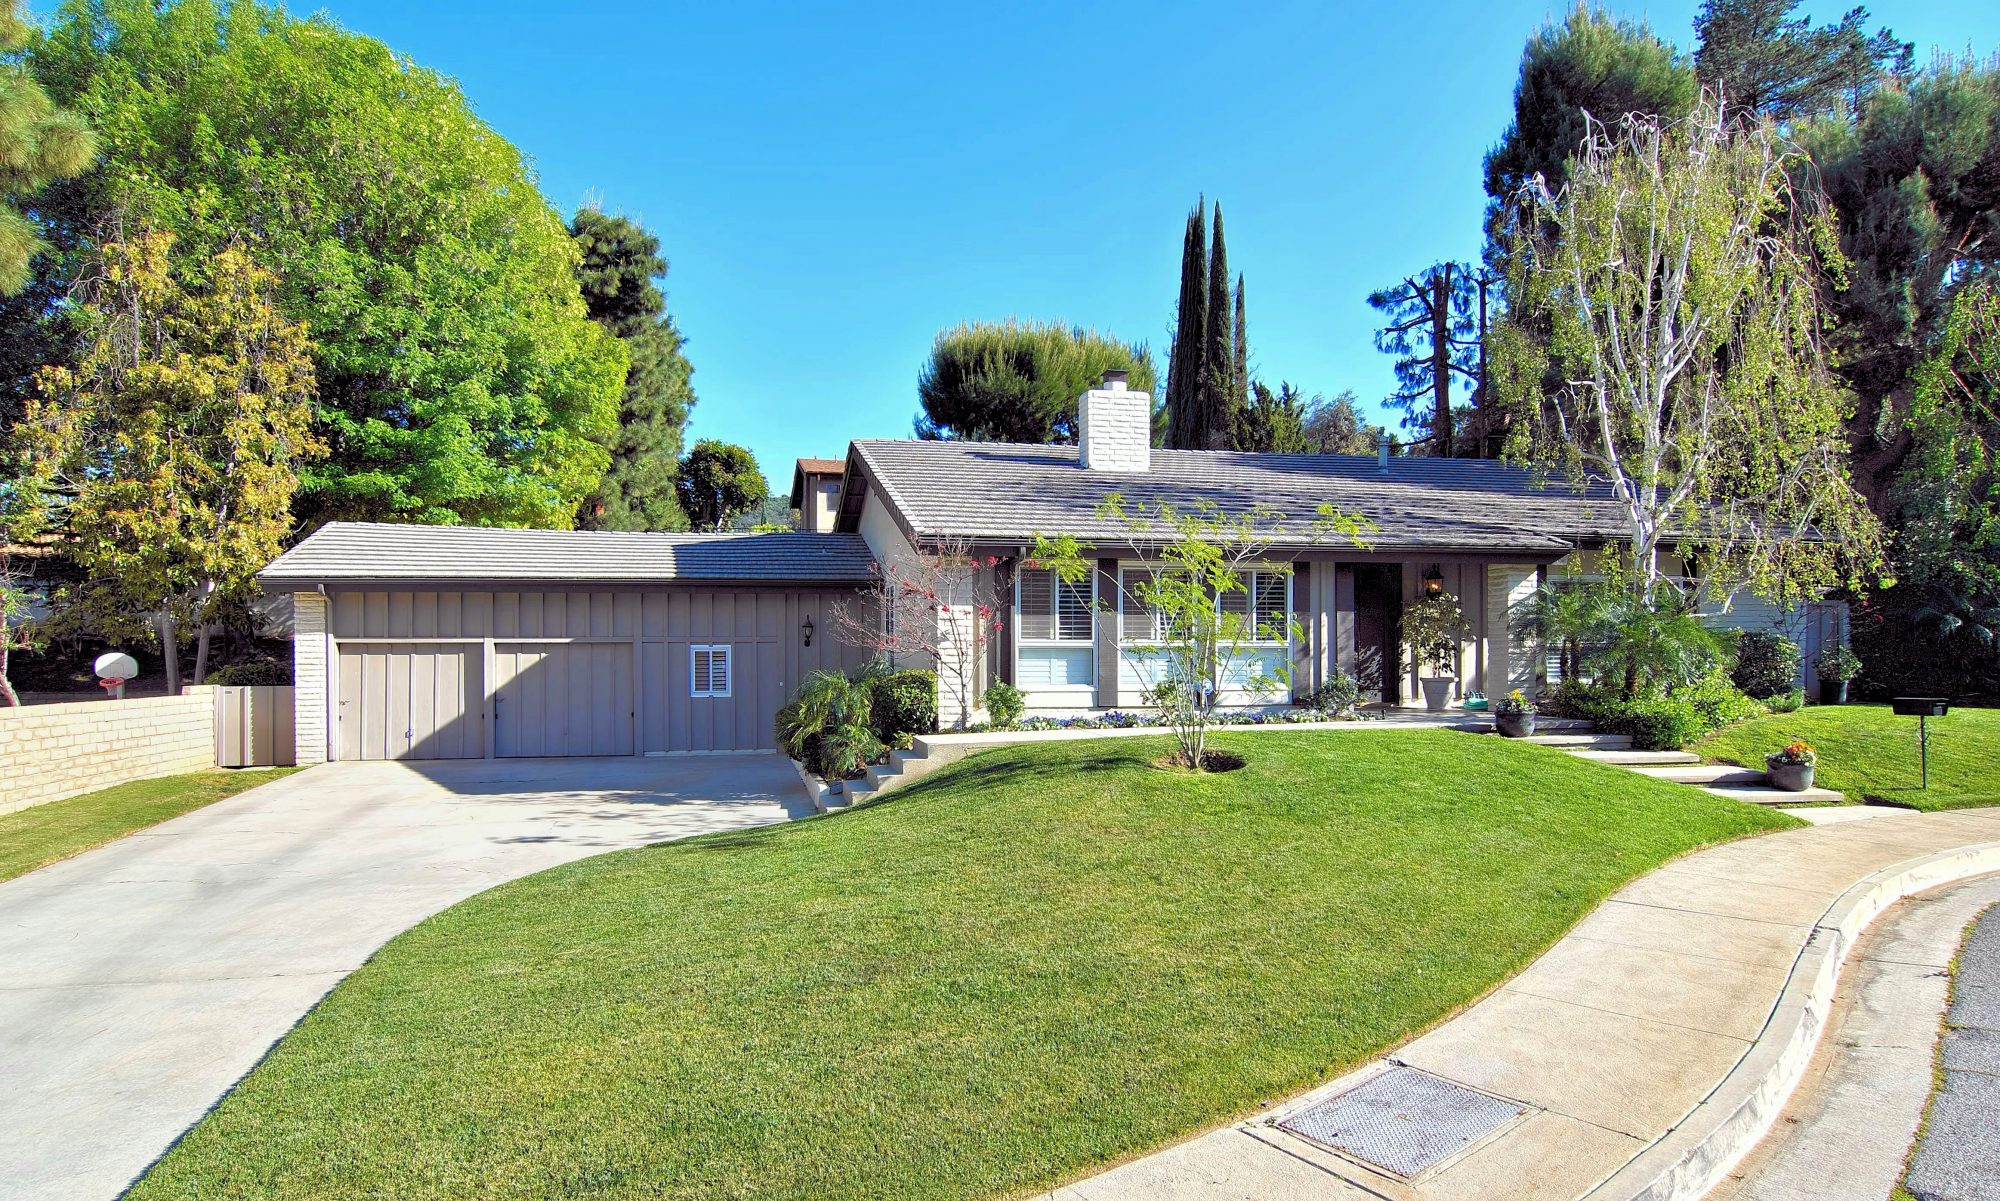 4312 Gauguin Ave. Woodland Hills